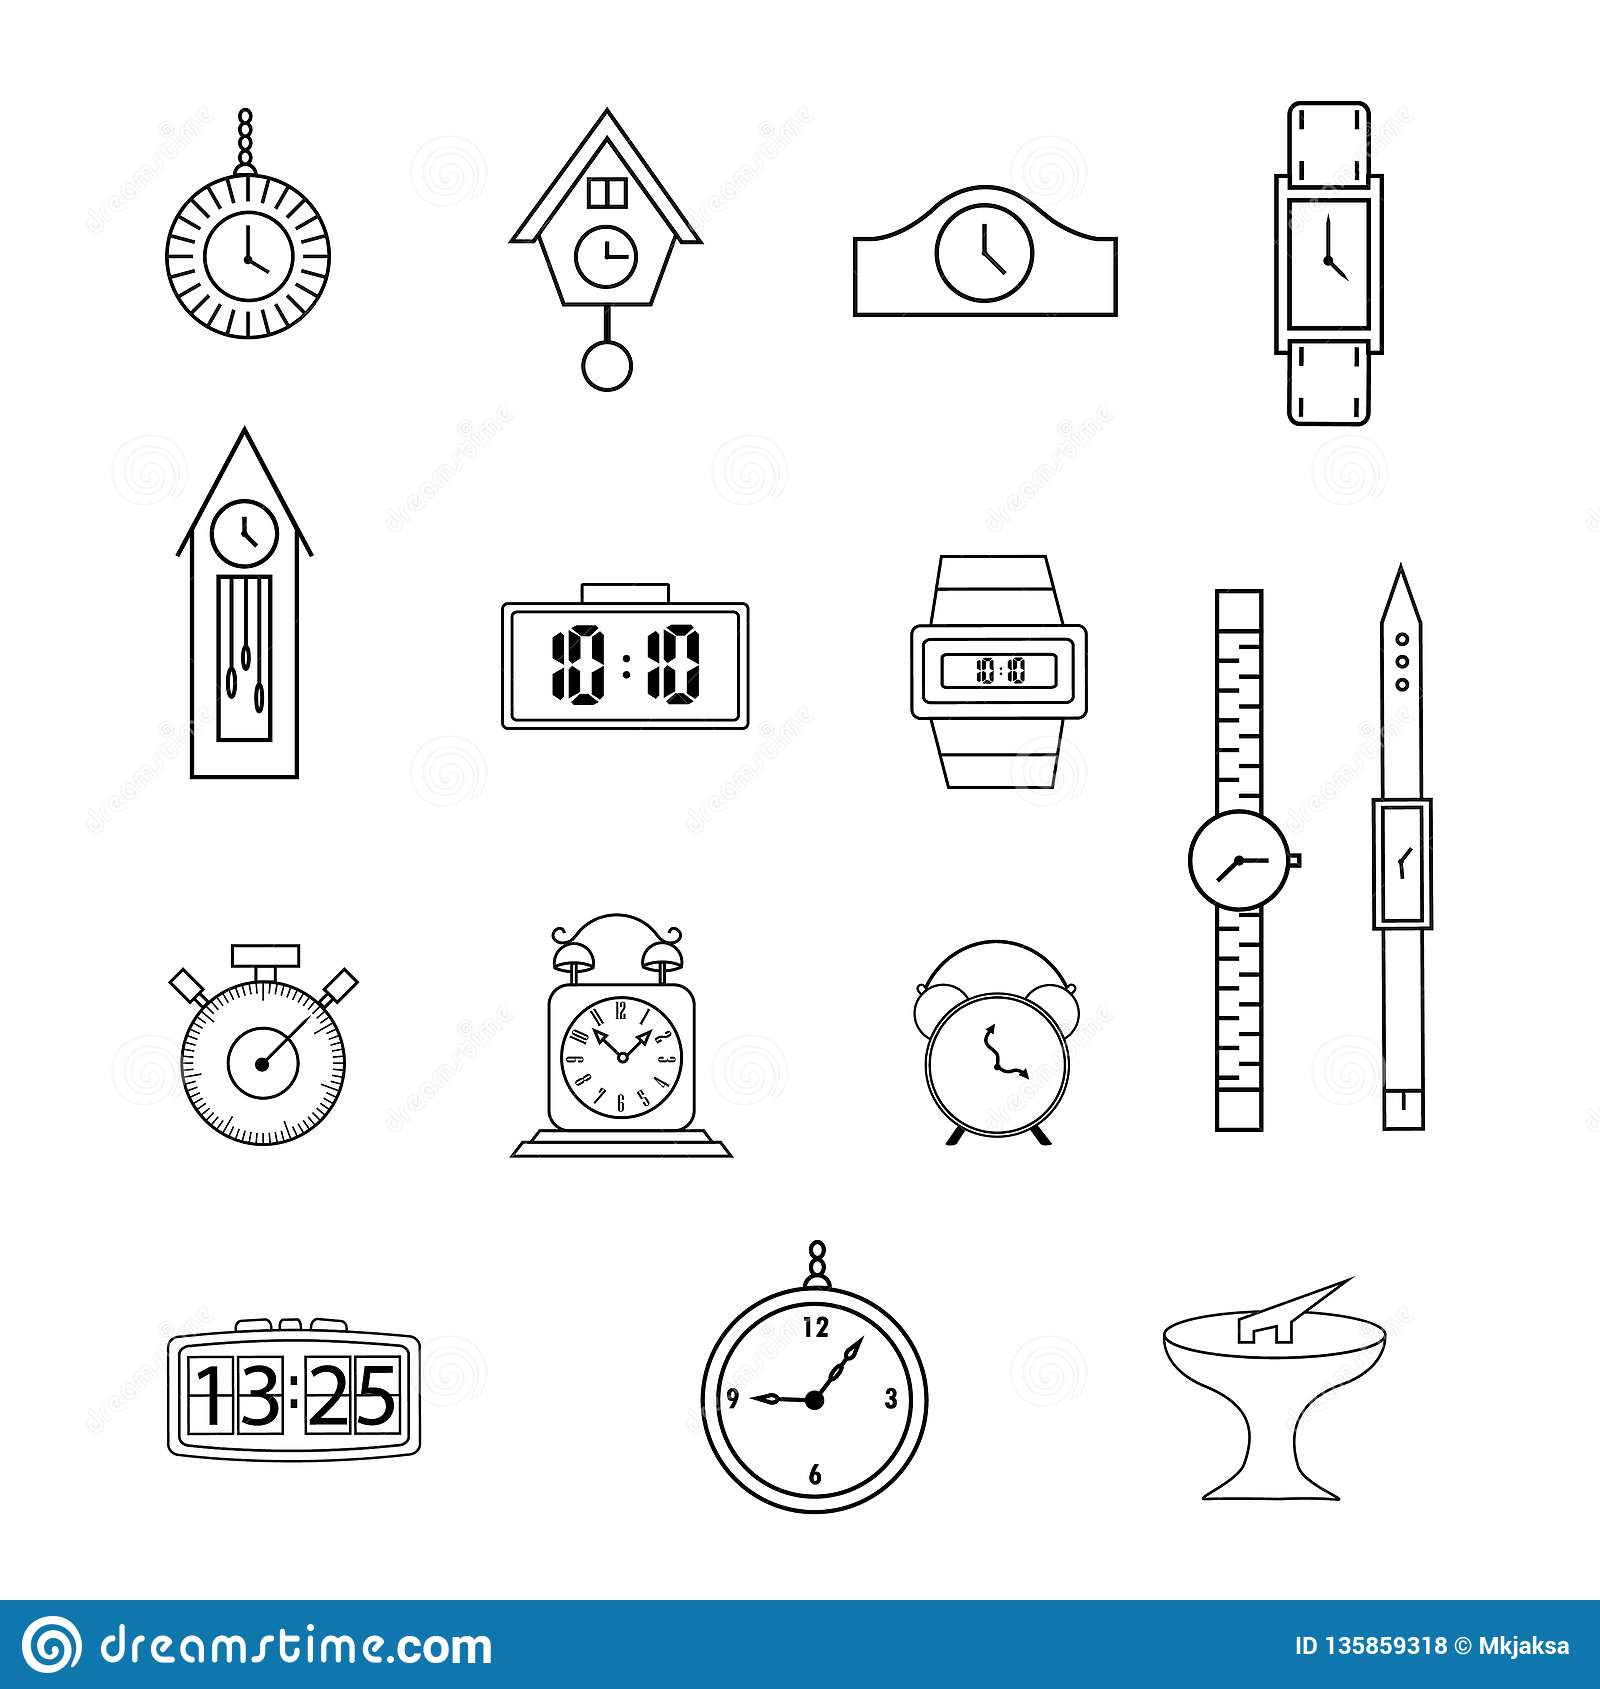 Set of line icons, flat icons collection, clock, watch, on white background